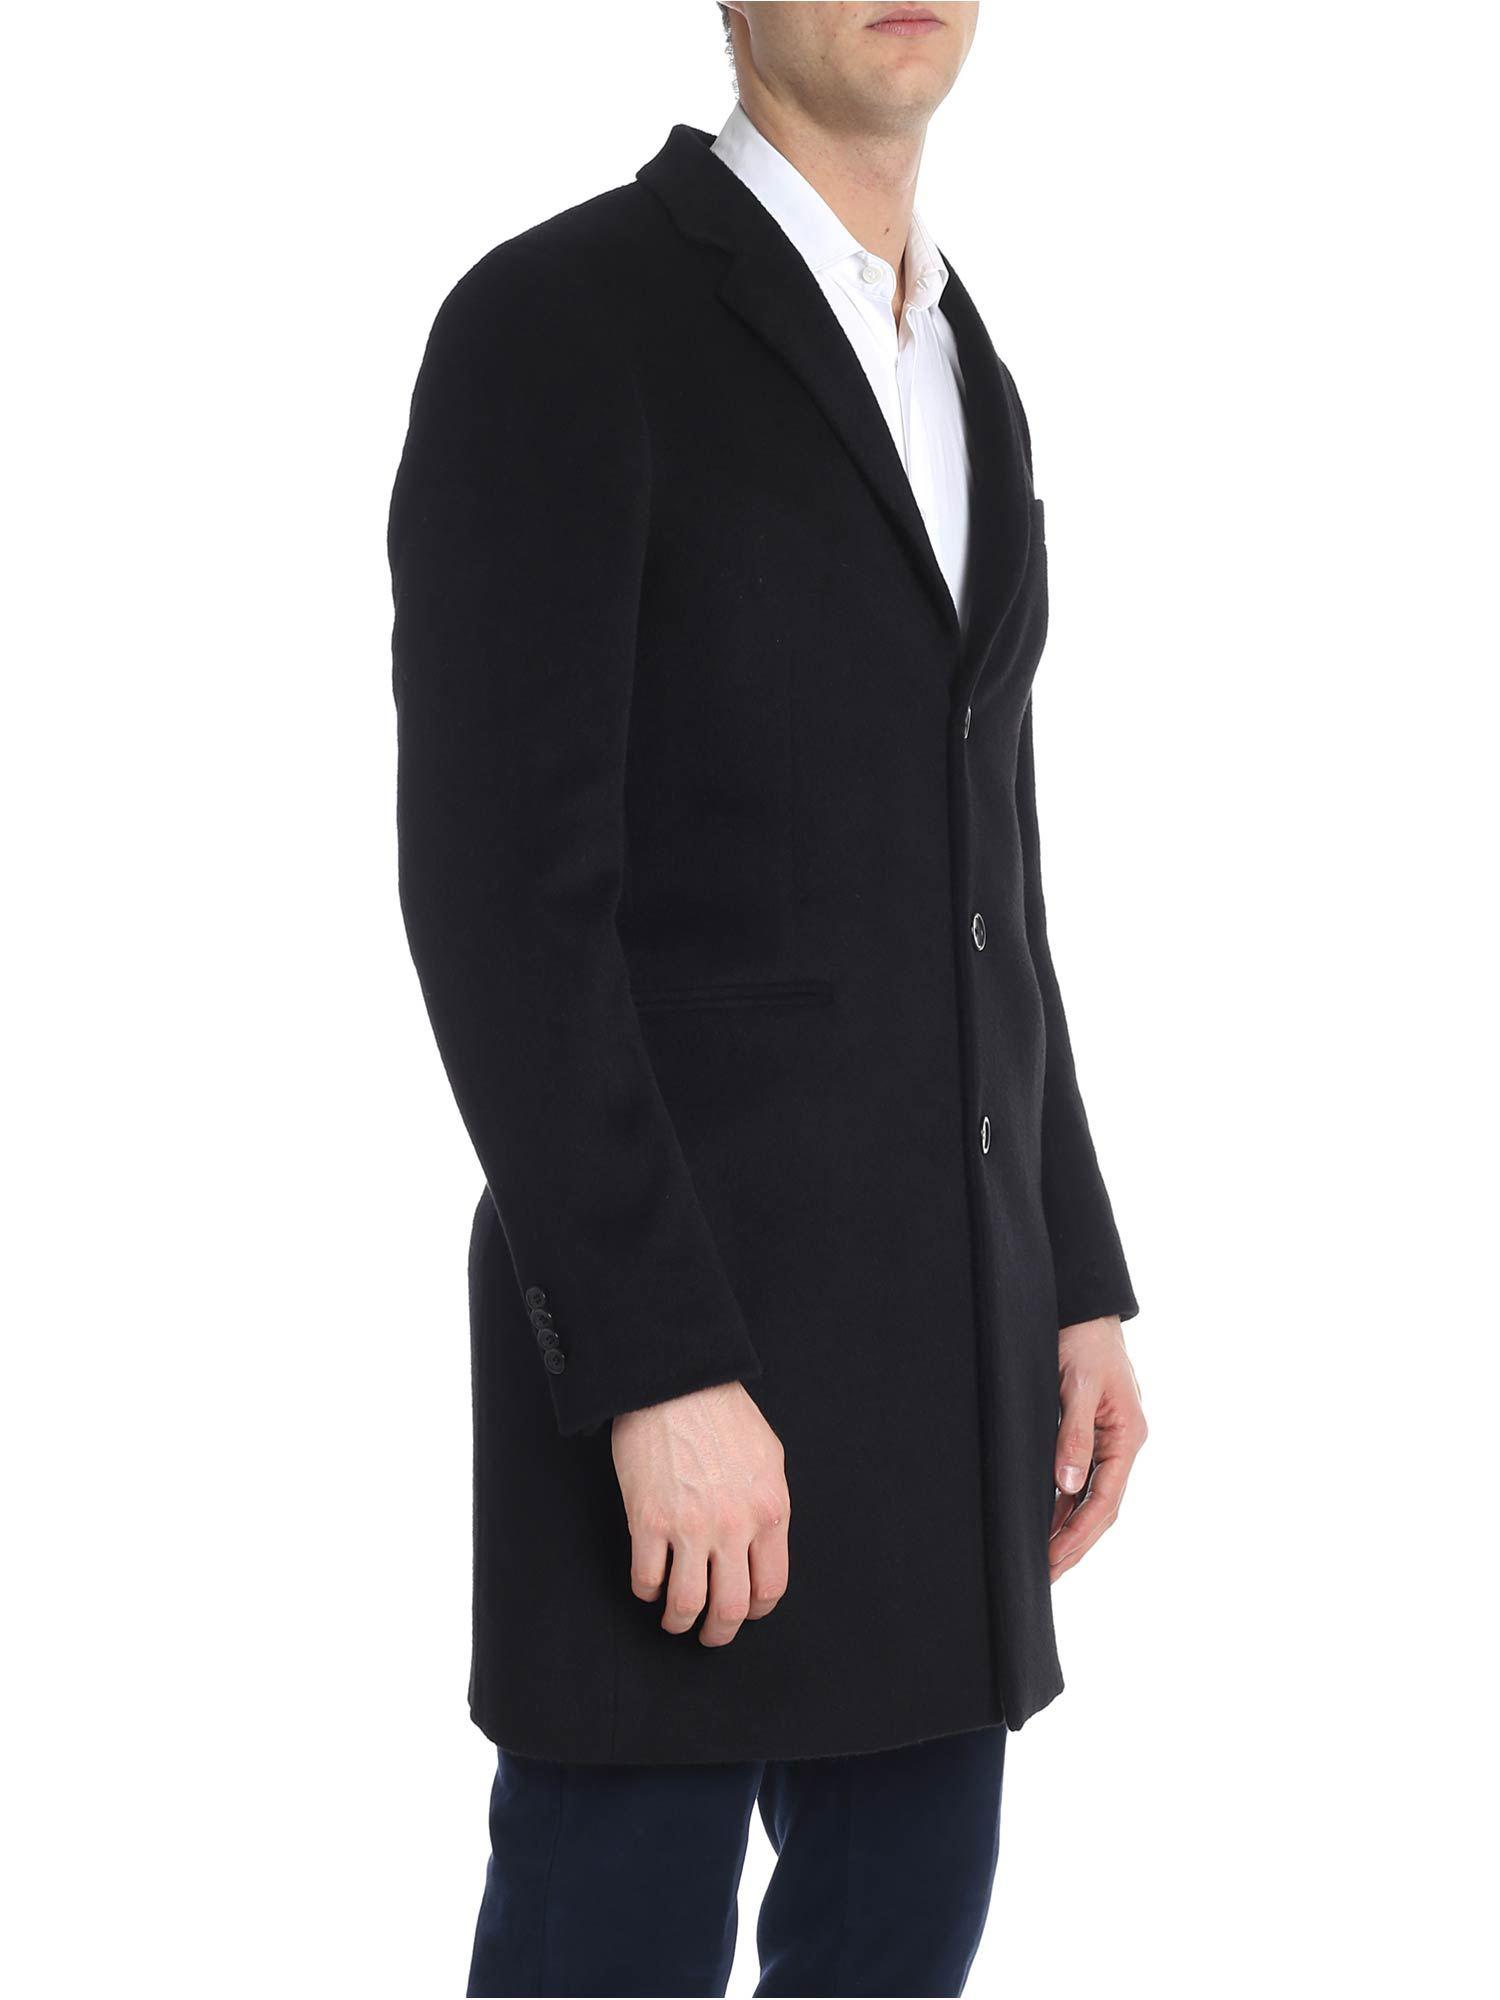 7cc3e47c57b PS by Paul Smith Black Three Button Coat in Black for Men - Lyst